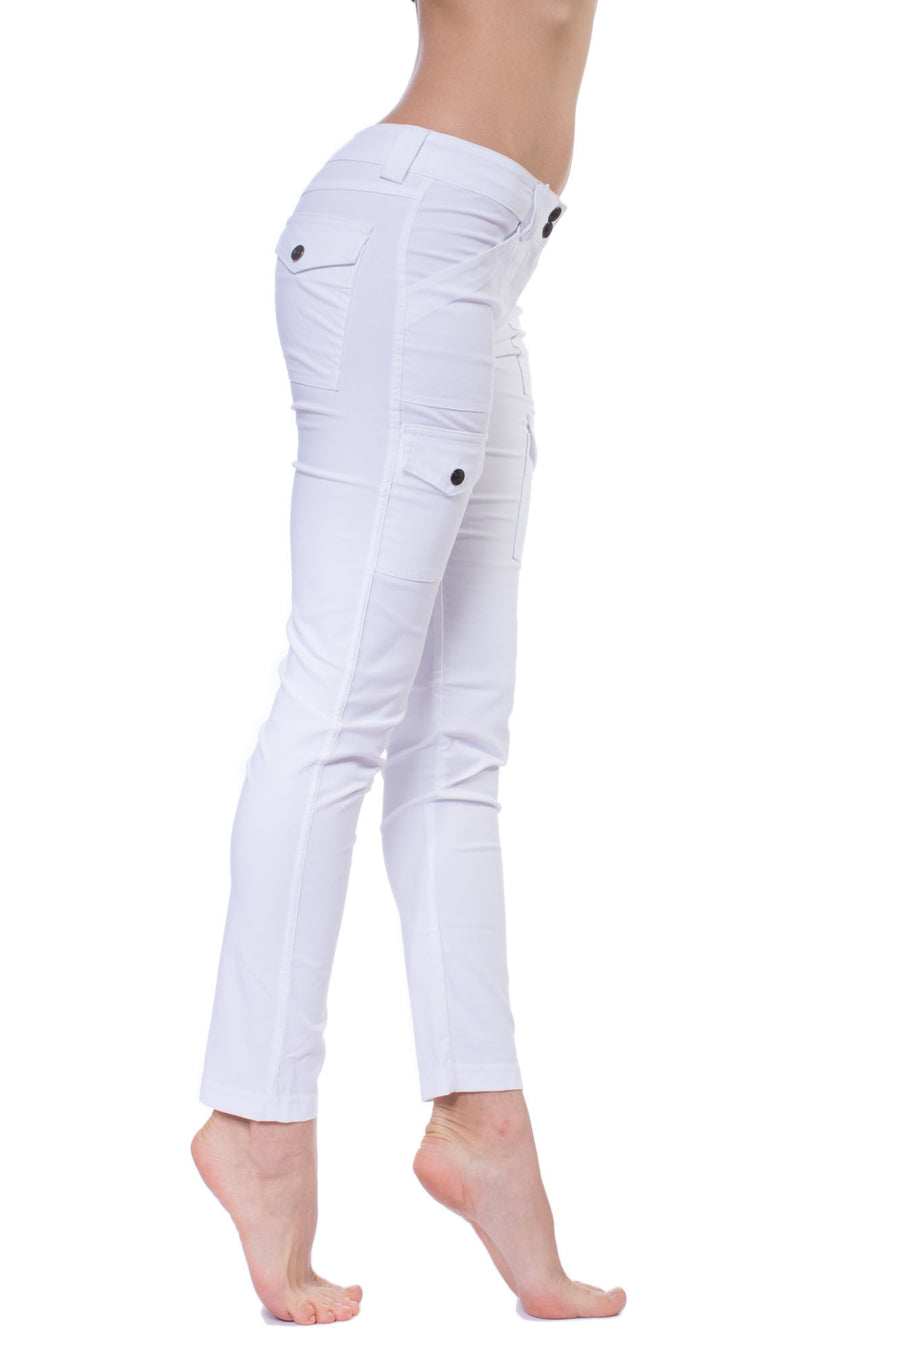 Kate Skinny Cargo Pant (Style ASS411, White) by Anatomie